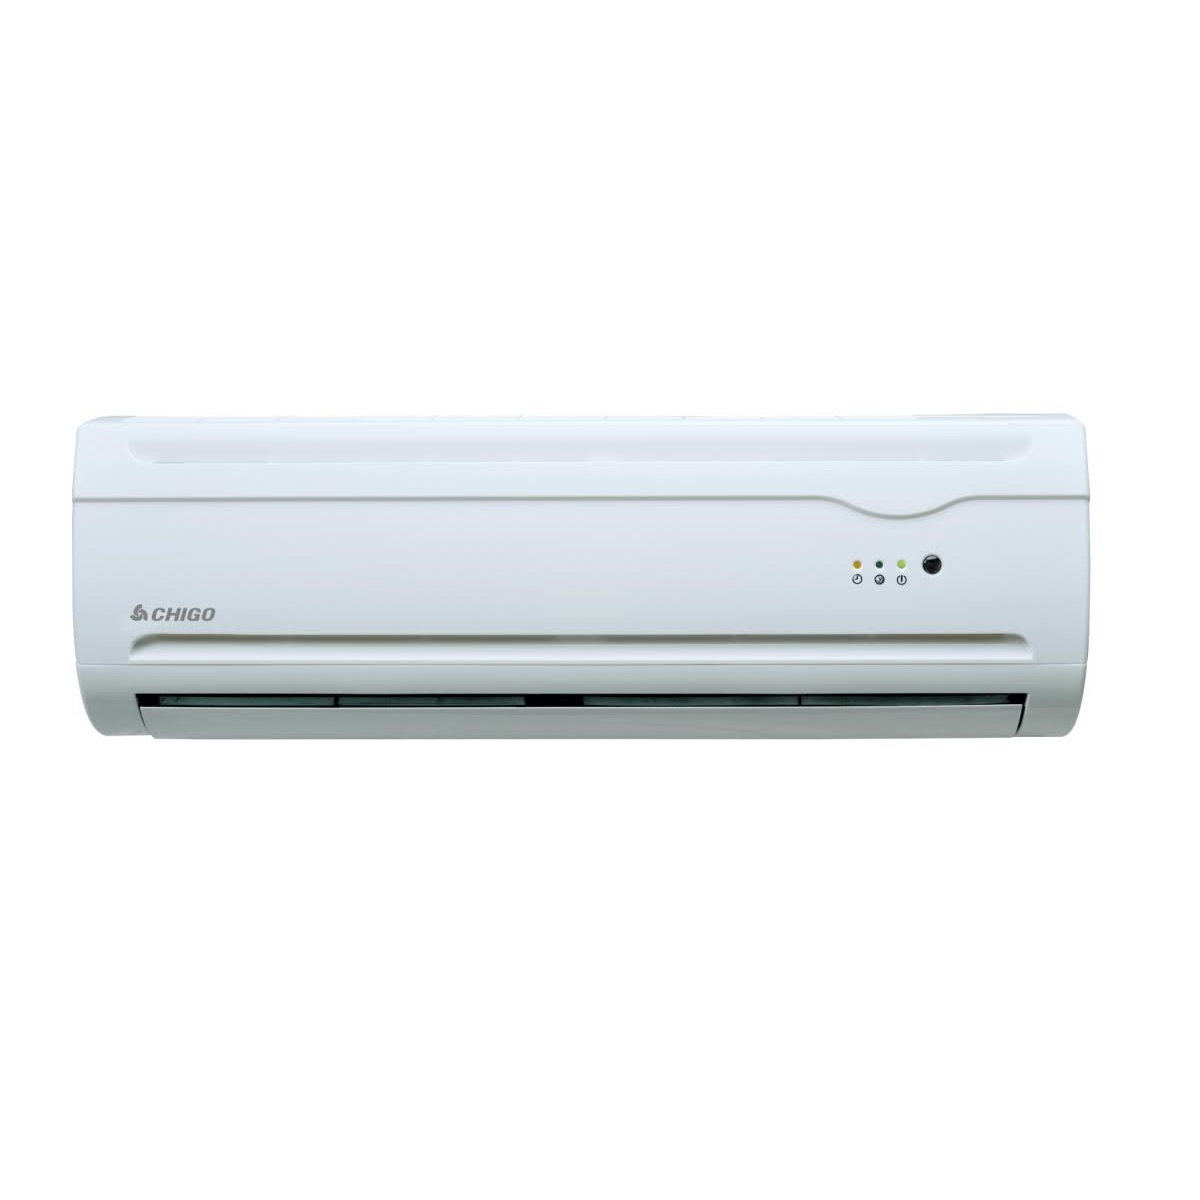 review of literature in air conditioner Lennox el16xc1 air conditioner has efficiency ratings of up to 1700 seer and  can save you hundreds of dollars a  read more reviews  product literature.